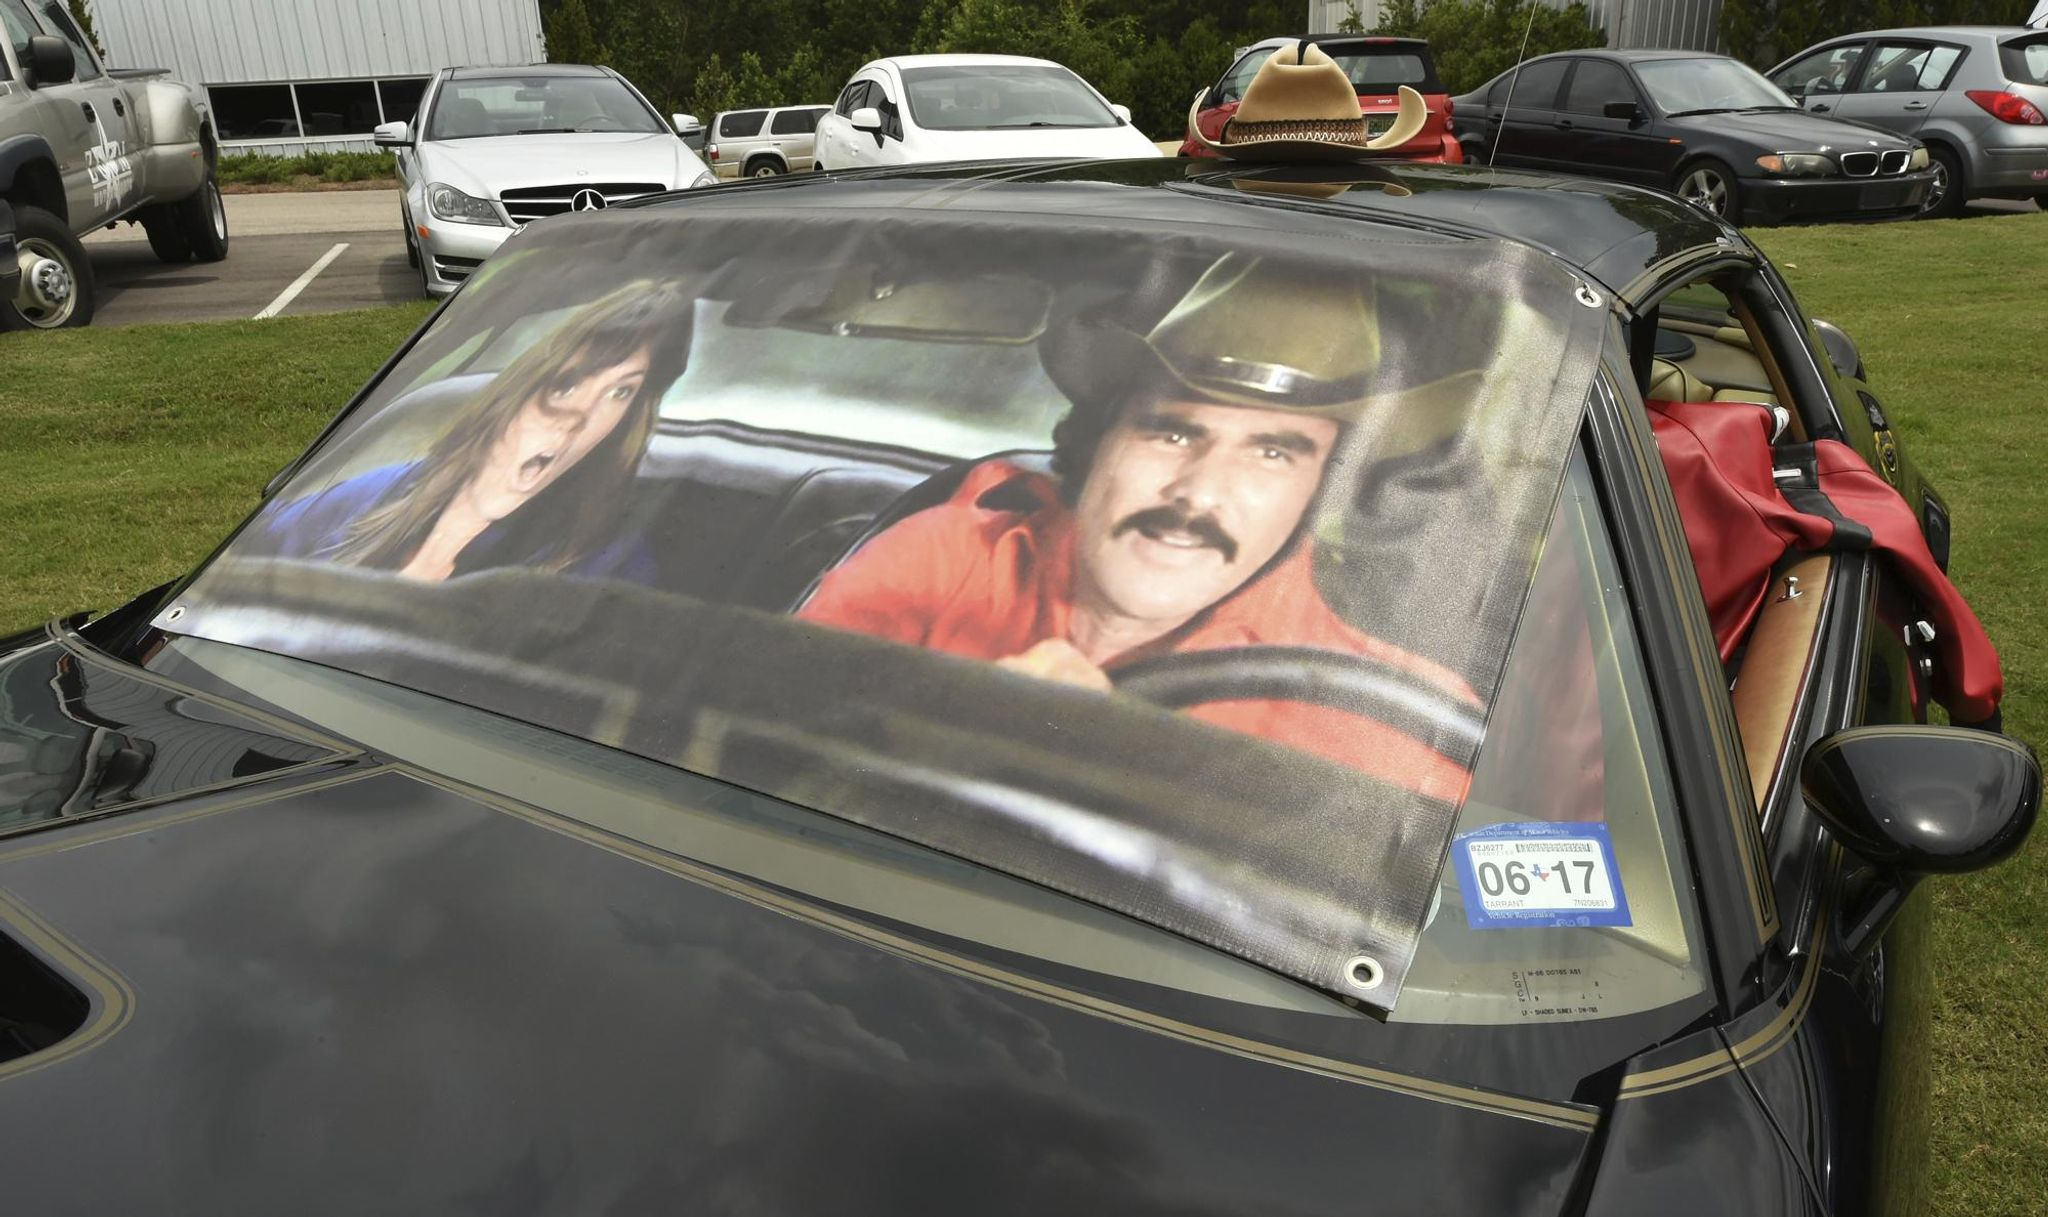 Detroit blocks 'Smokey and the Bandit' stunt at car show over Confederate flag license plate: Report